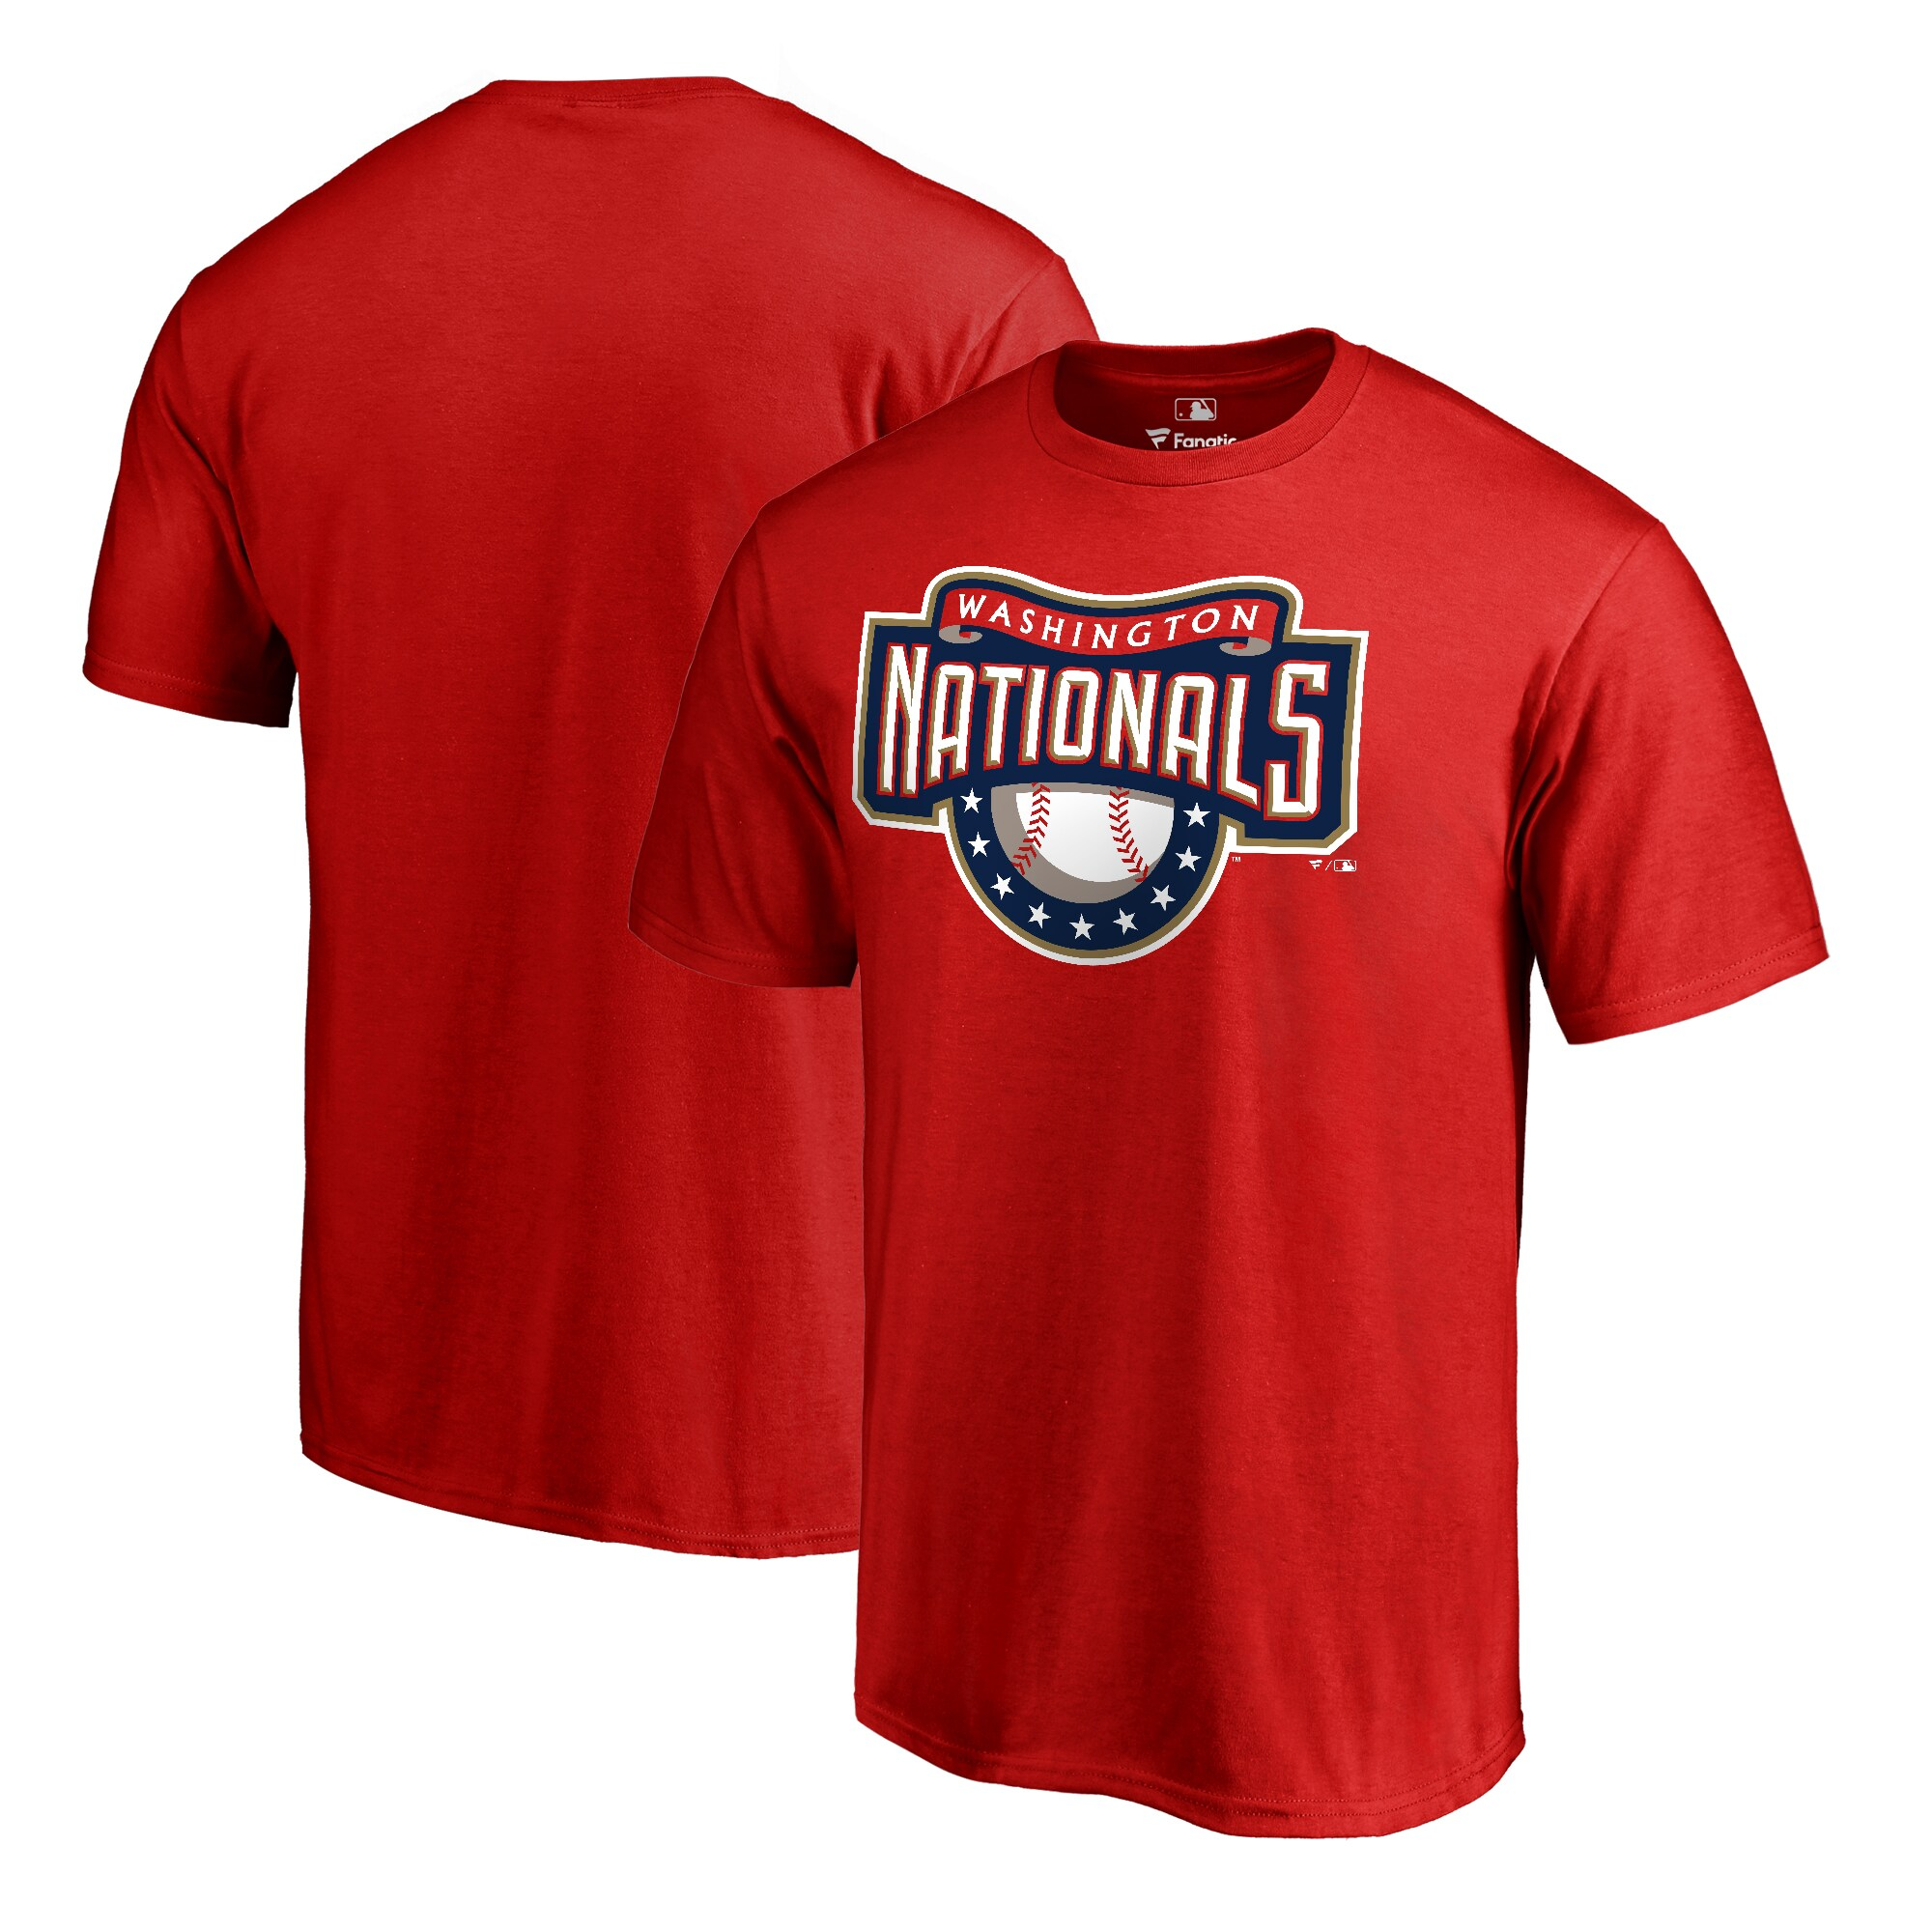 Washington Nationals Fanatics Branded Cooperstown Collection Huntington T-Shirt - Red